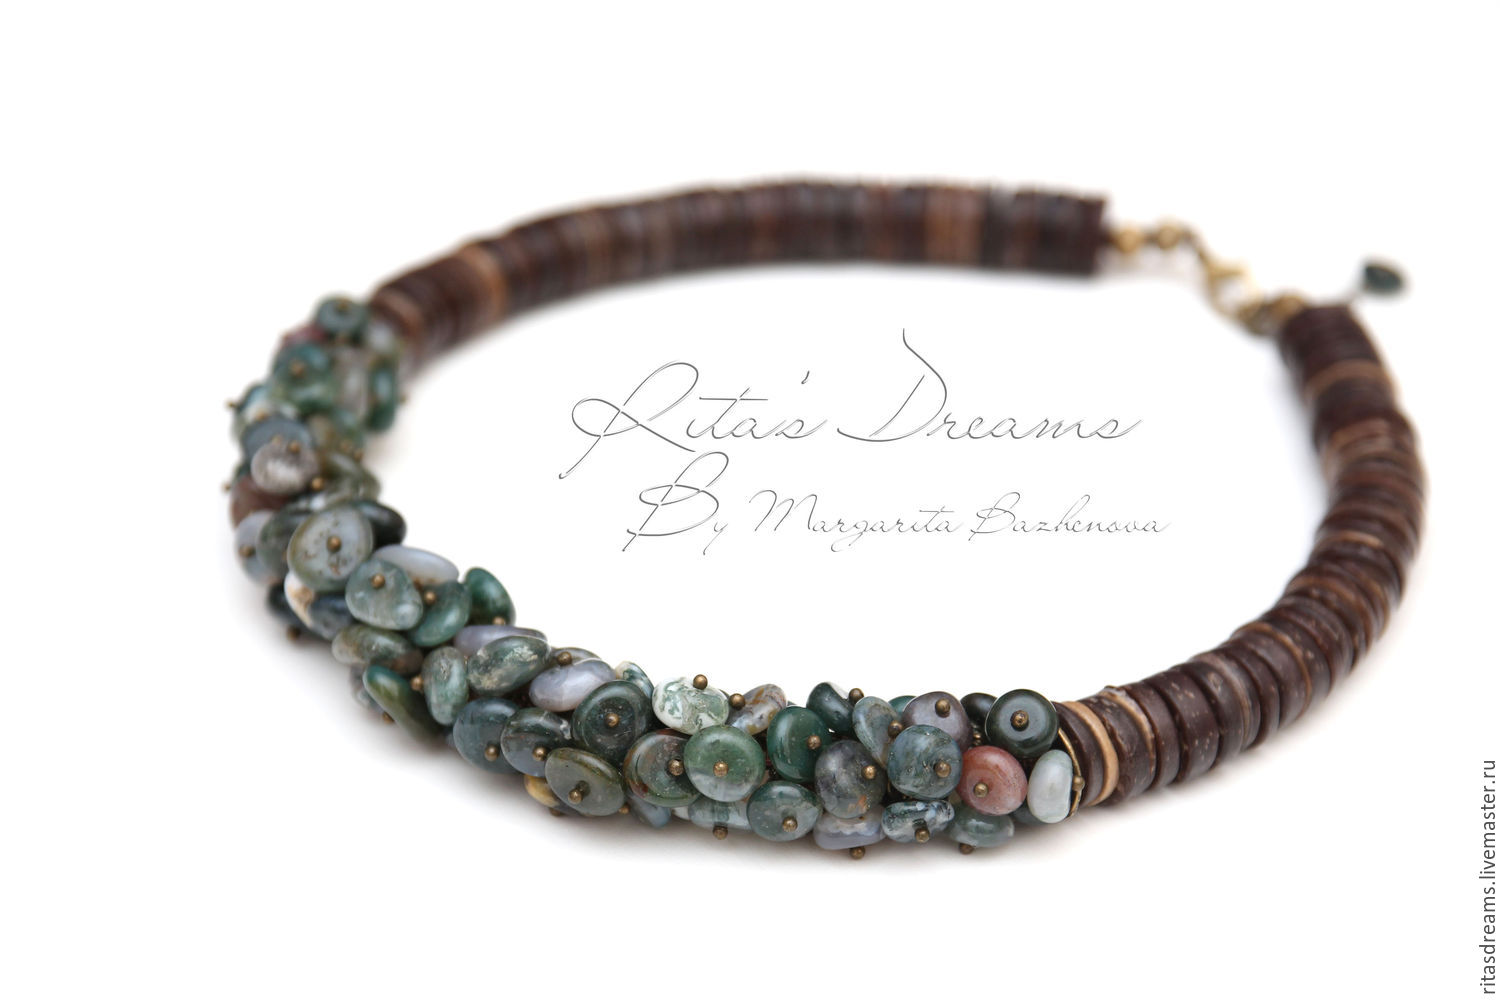 Short necklace with Indian agate hints of herbs and dark brown coconut.  Length of necklace 44 cm + 2 cm chain for adjustment.